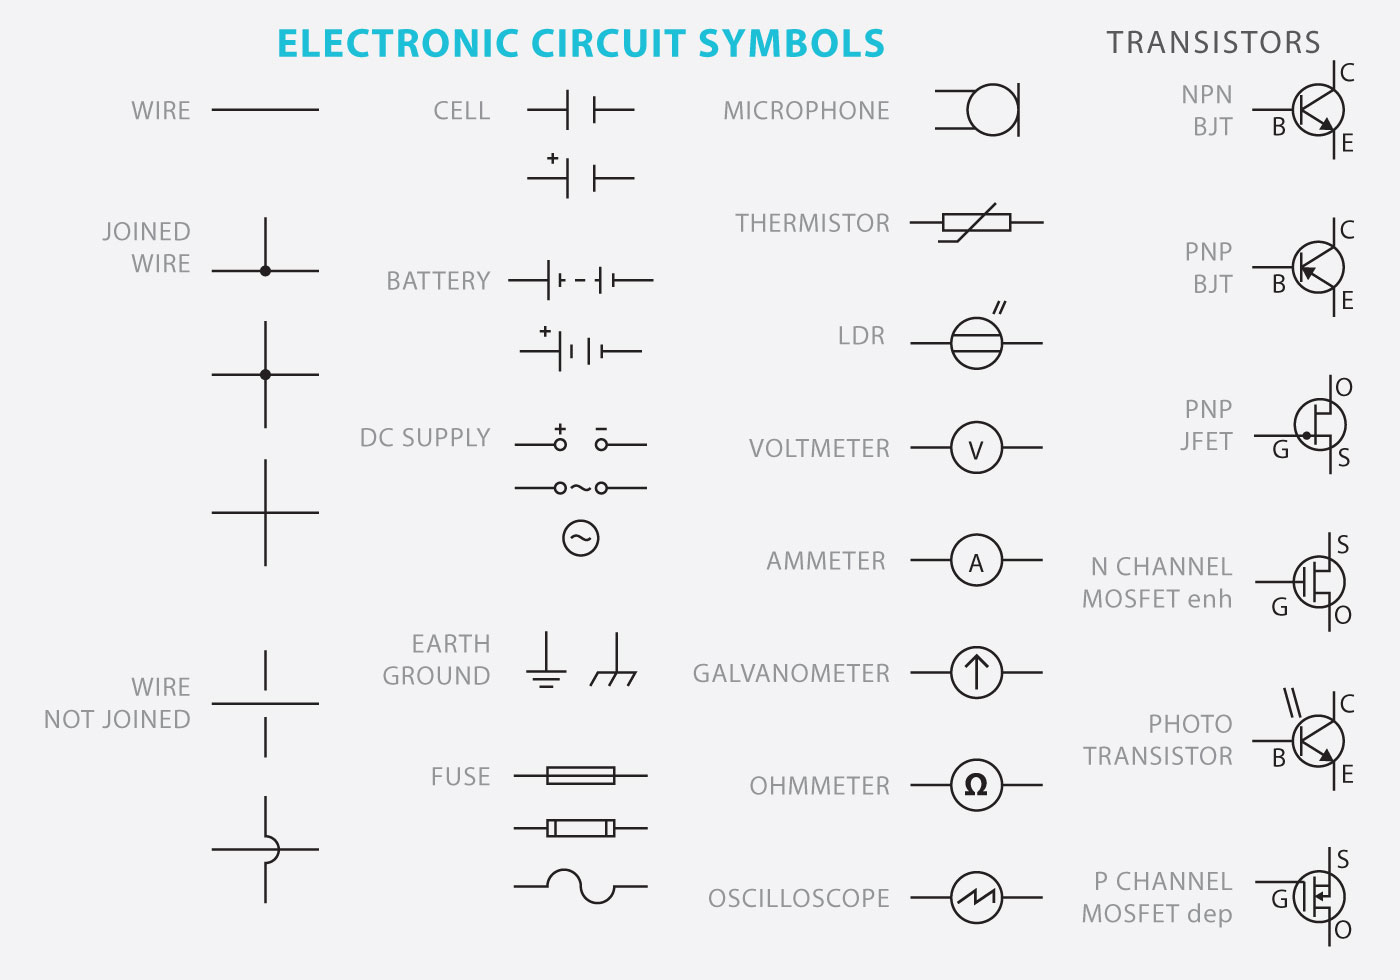 automotive electrical wiring diagram symbols efcaviation floor of mouth electronic circuit symbol vectors download free vector